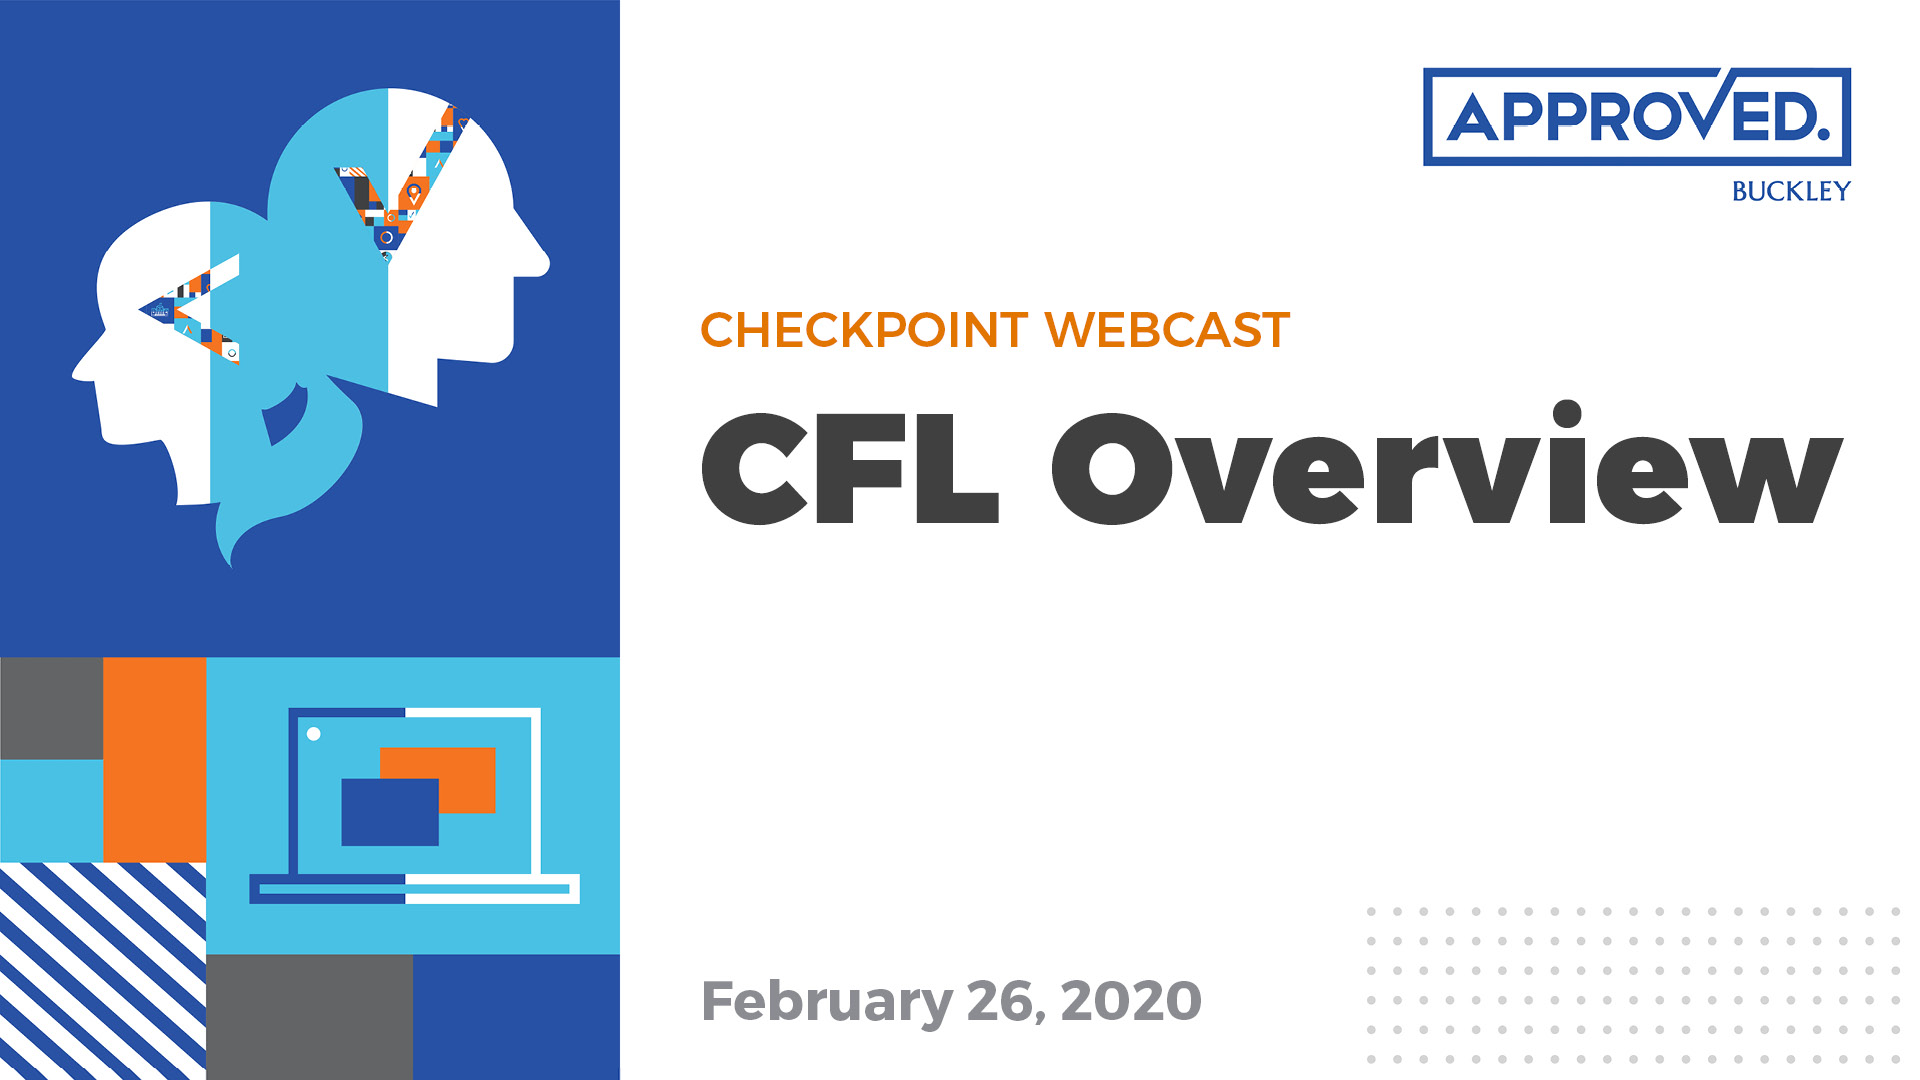 Checkpoint Webcast: CFL Overview